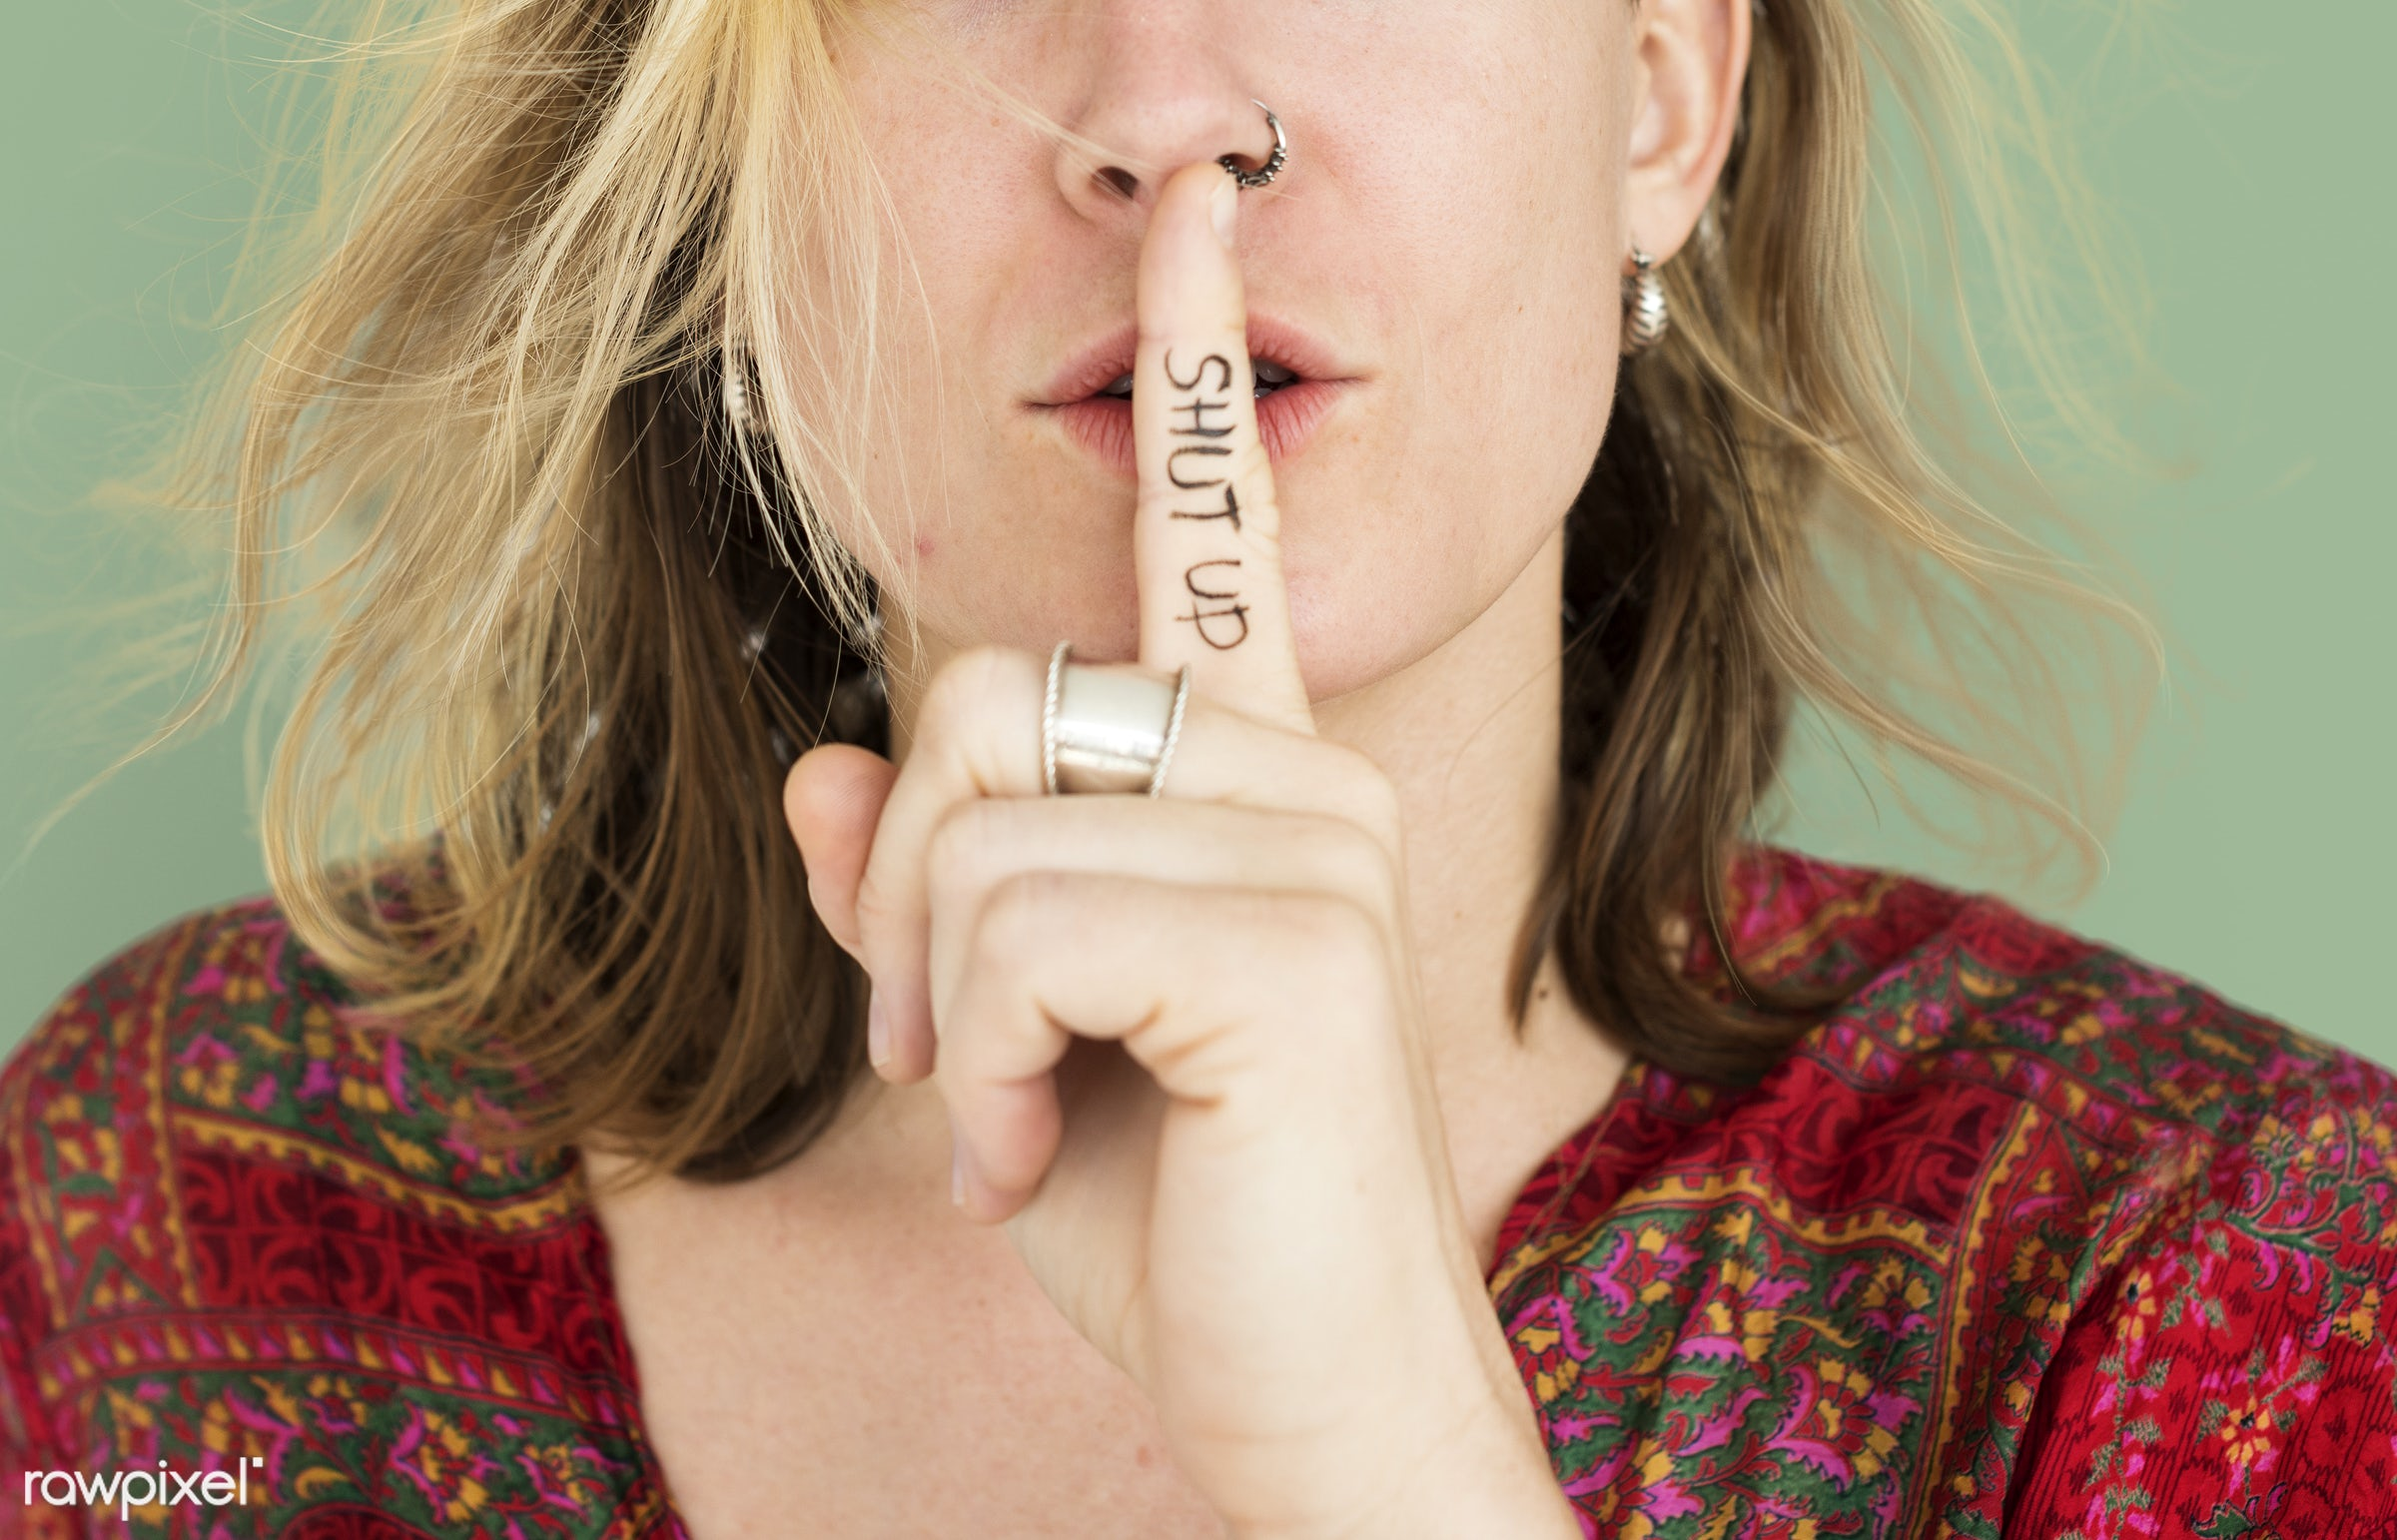 studio, expression, face, person, beauty, shut up, cute, pretty, people, finger on lips, girl, woman, casual, shh, isolated...